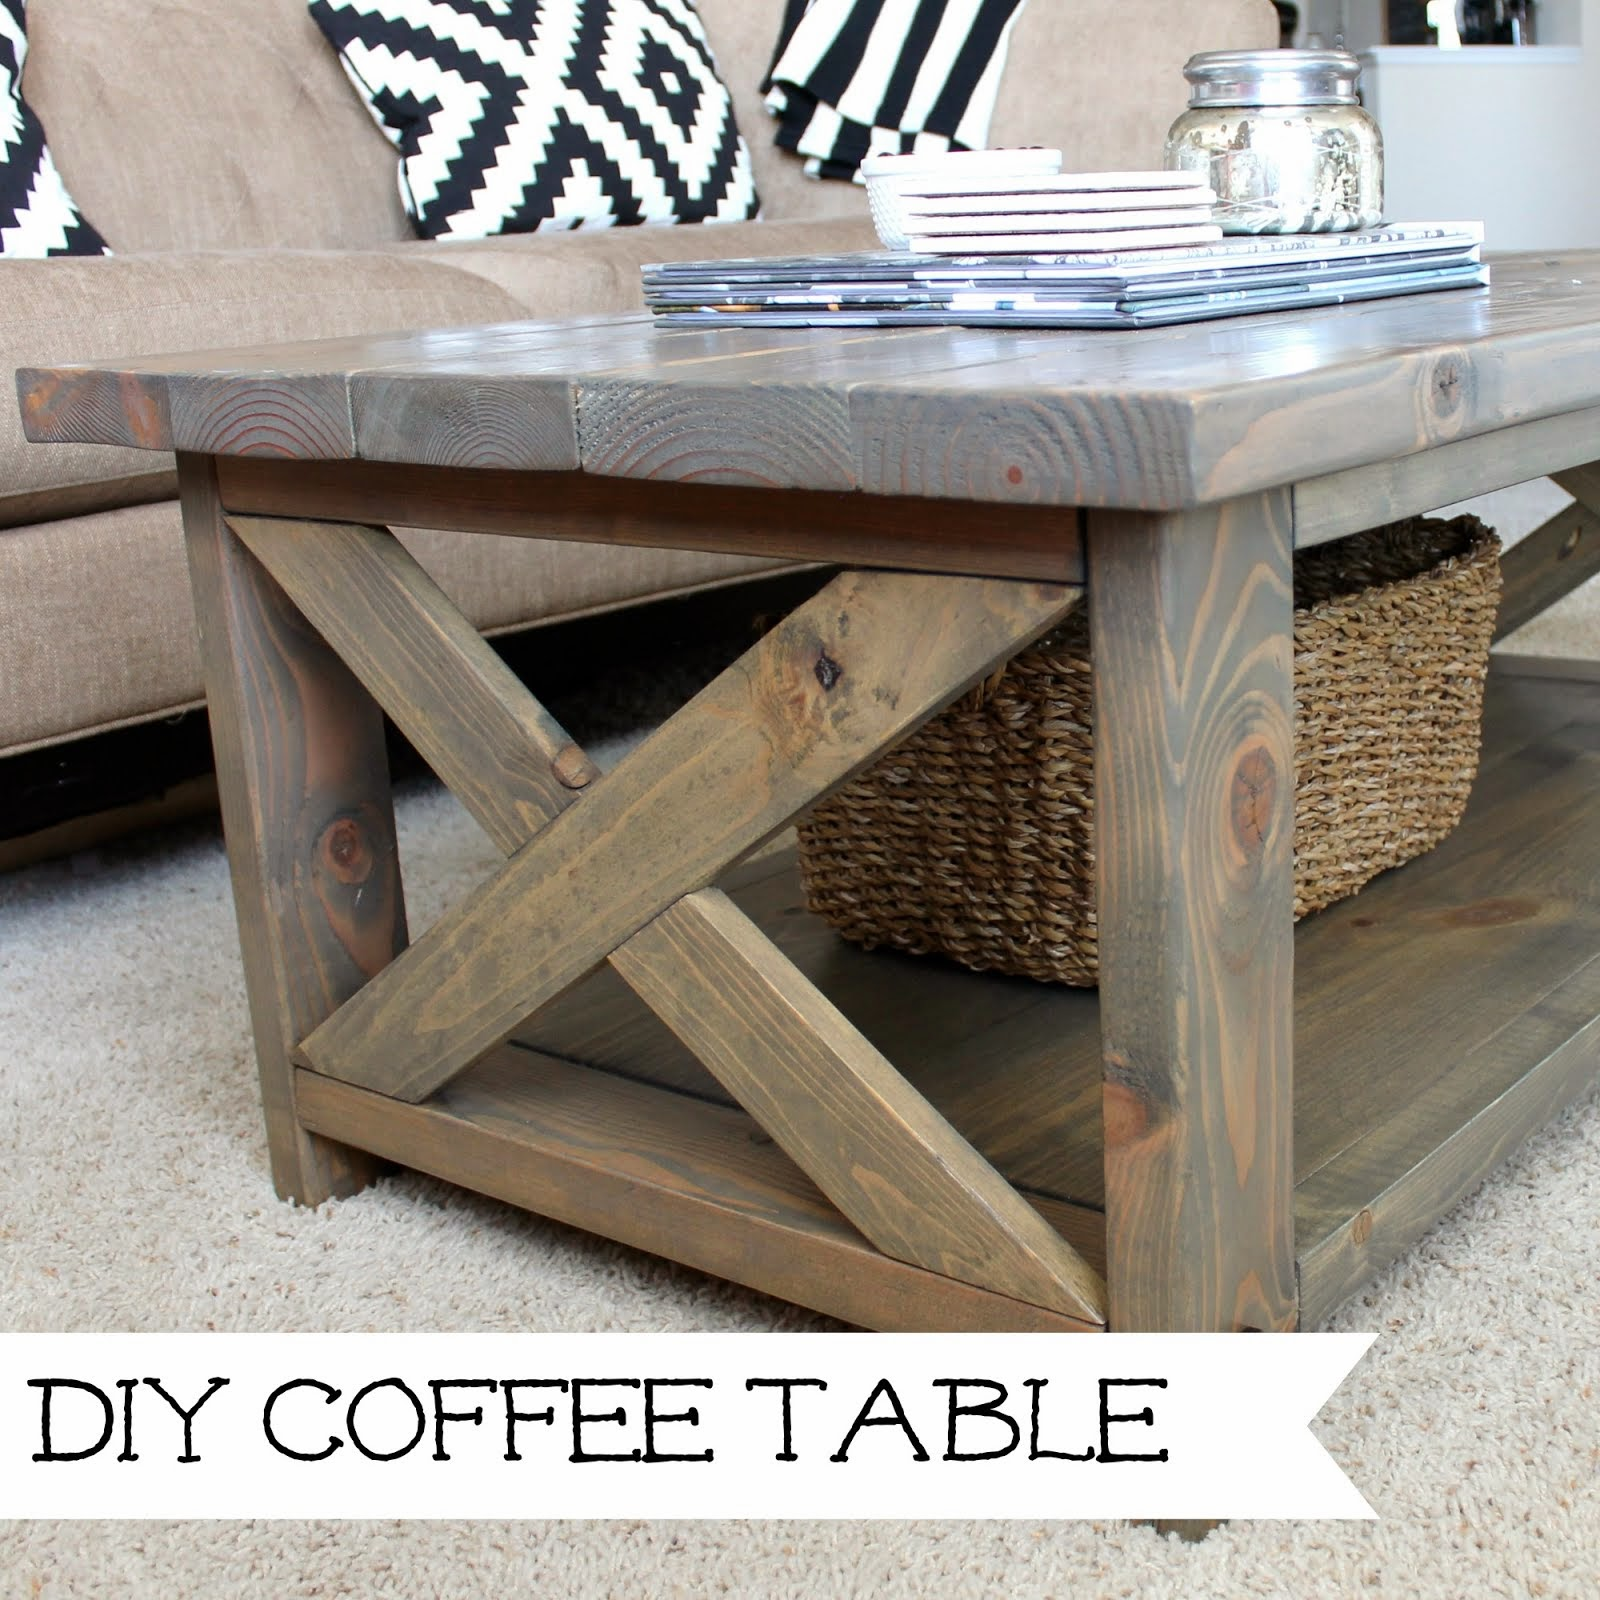 Wonderfully made finished diy coffee table for Table th border none